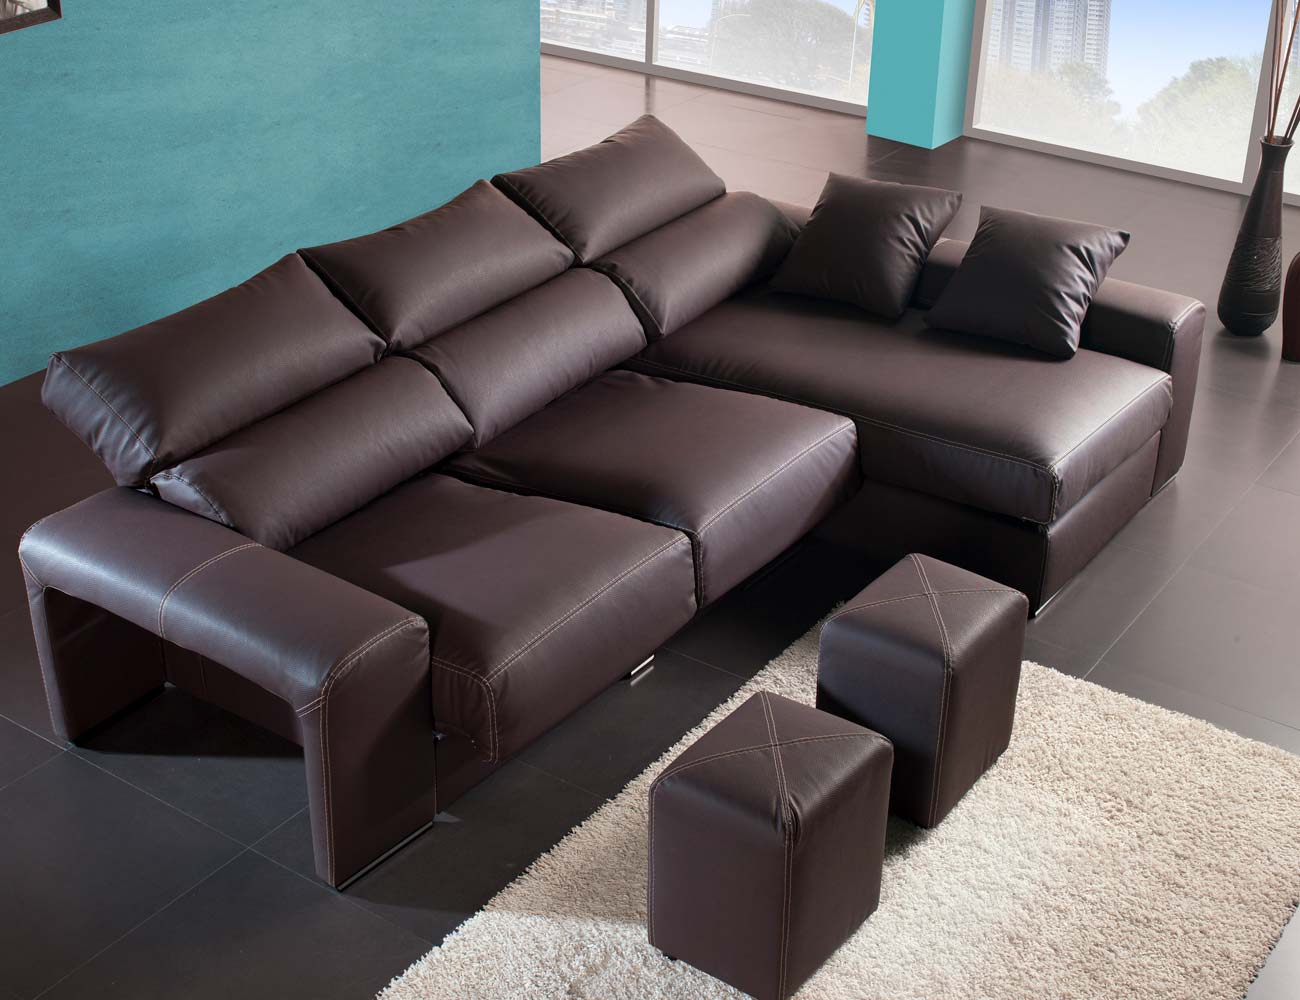 Sofa chaiselongue moderno polipiel chocolate poufs taburetes38